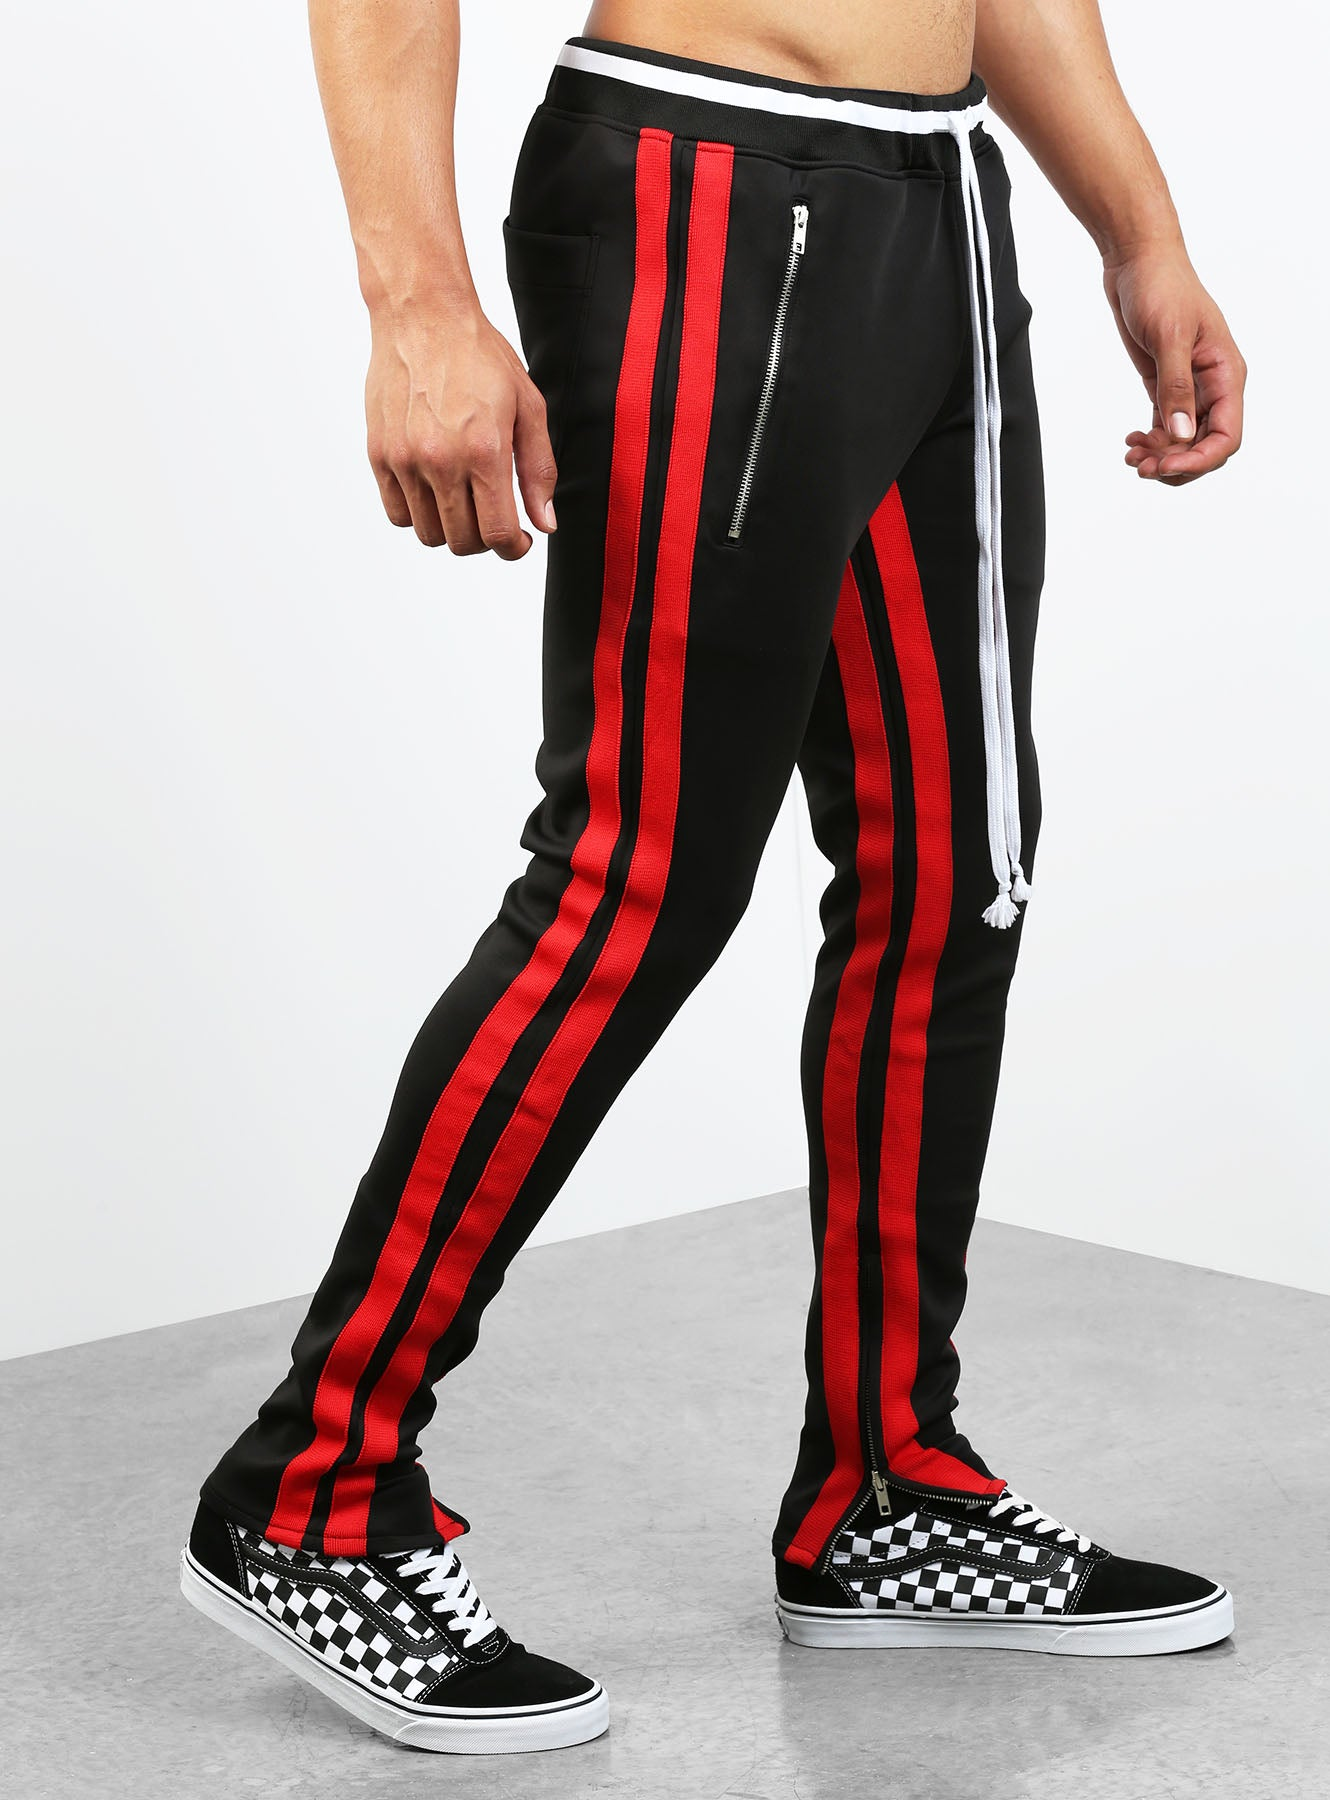 8f71c0a2a0ce83 Double Striped Track Pants V2 in Black and Red | HOODSTORE | HOODSTORE